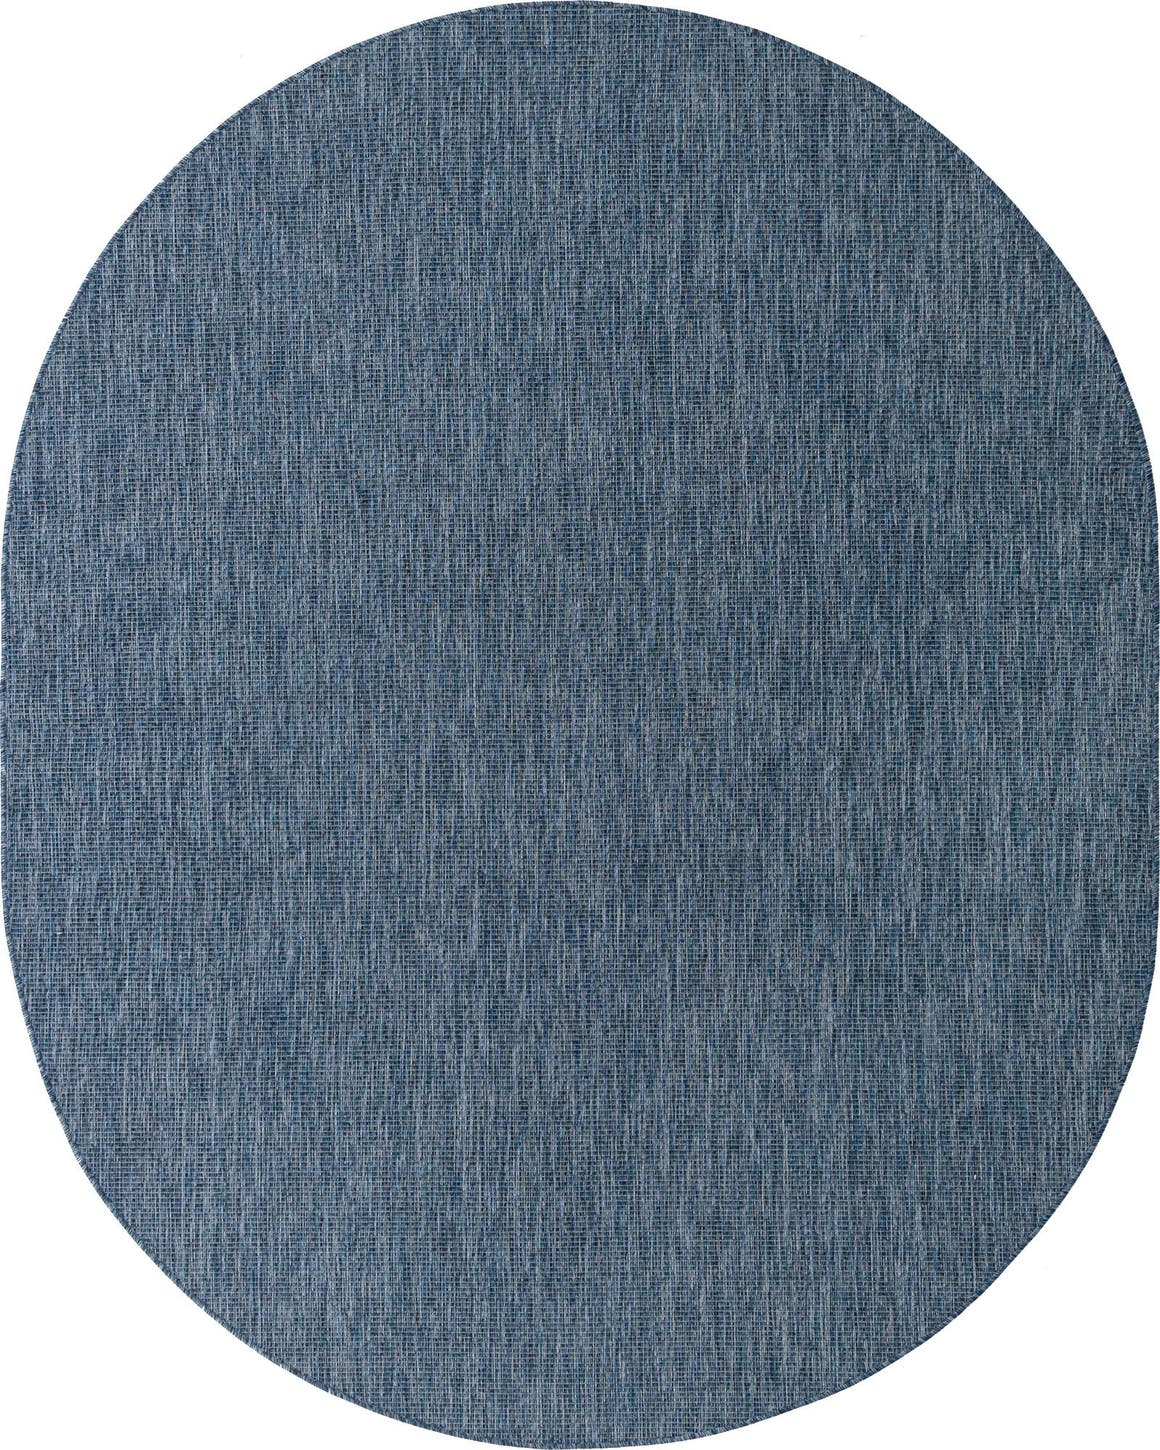 8' x 10' Outdoor Basic Oval Rug main image